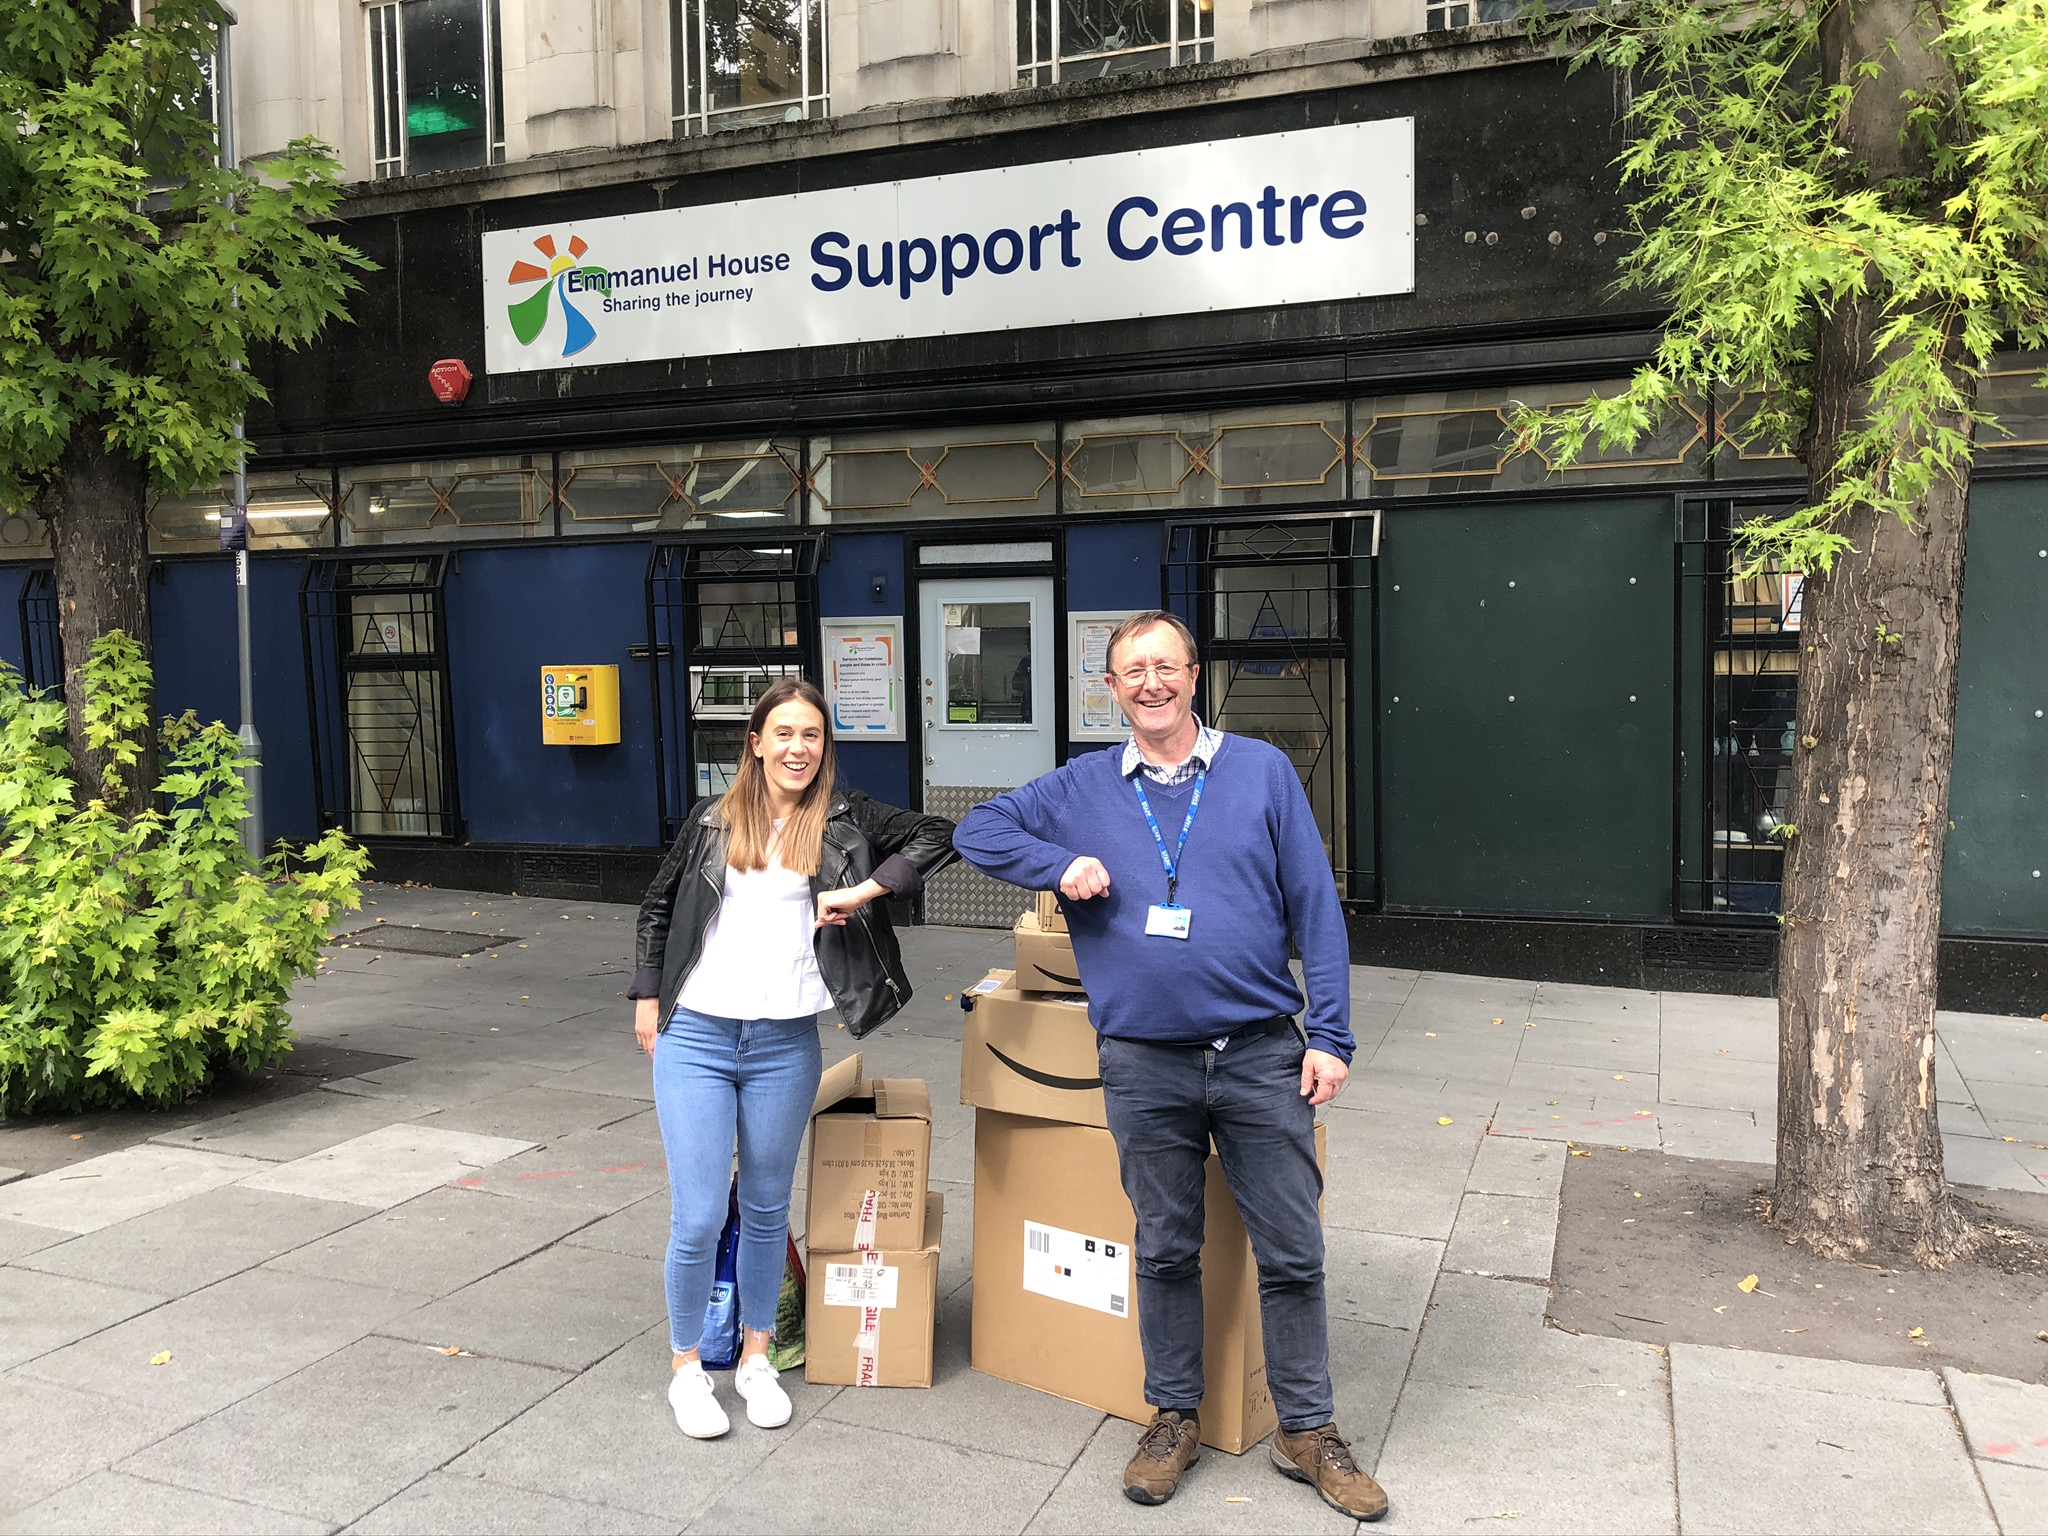 Nottingham tech business donates £1000 of food to local homeless shelter